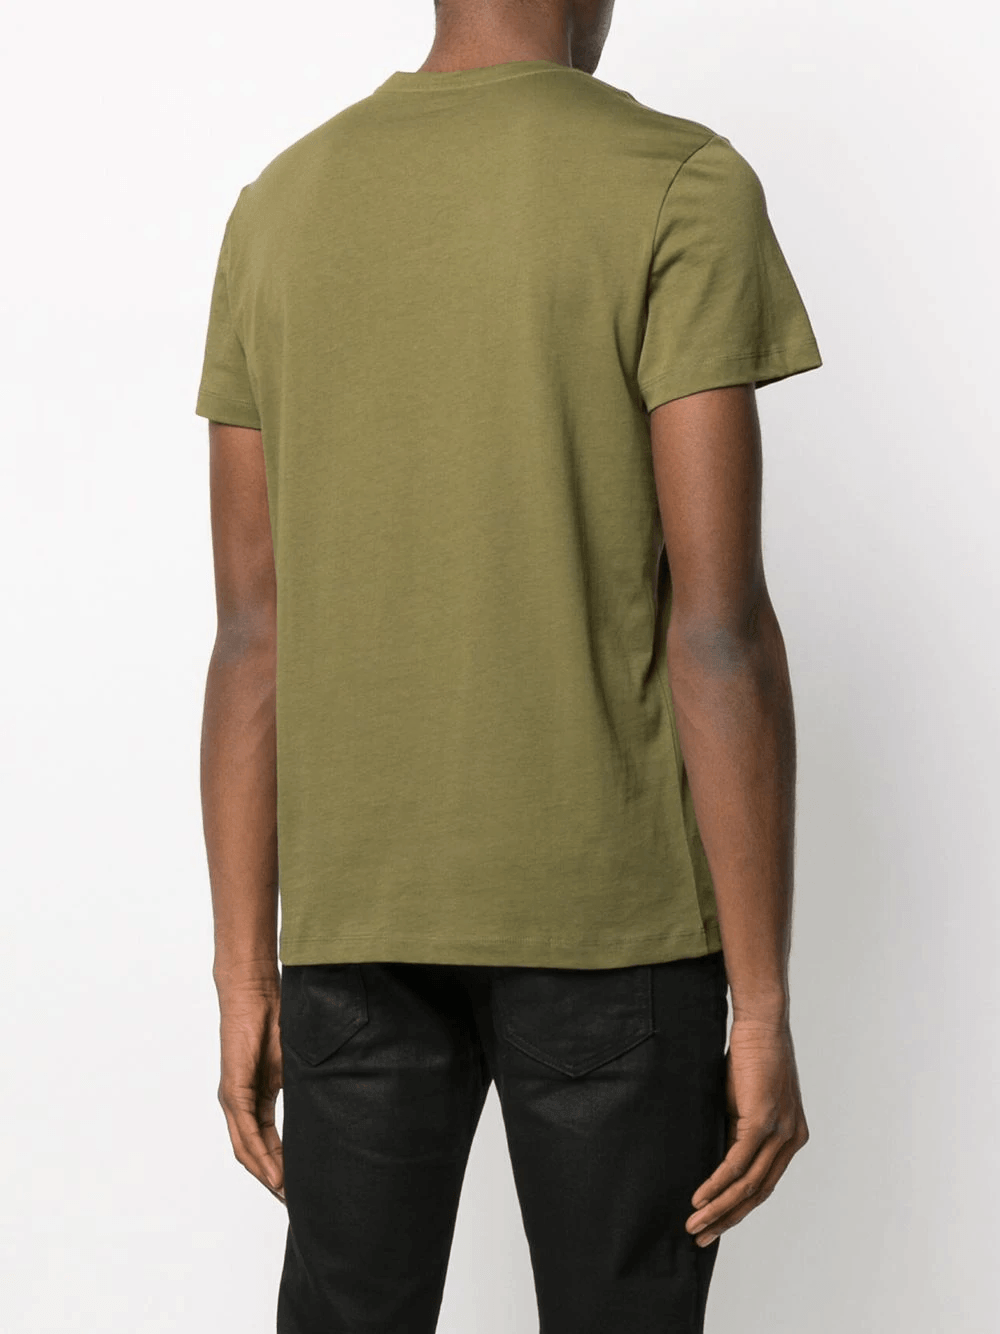 BALMAIN PARIS MEN T-SHIRT